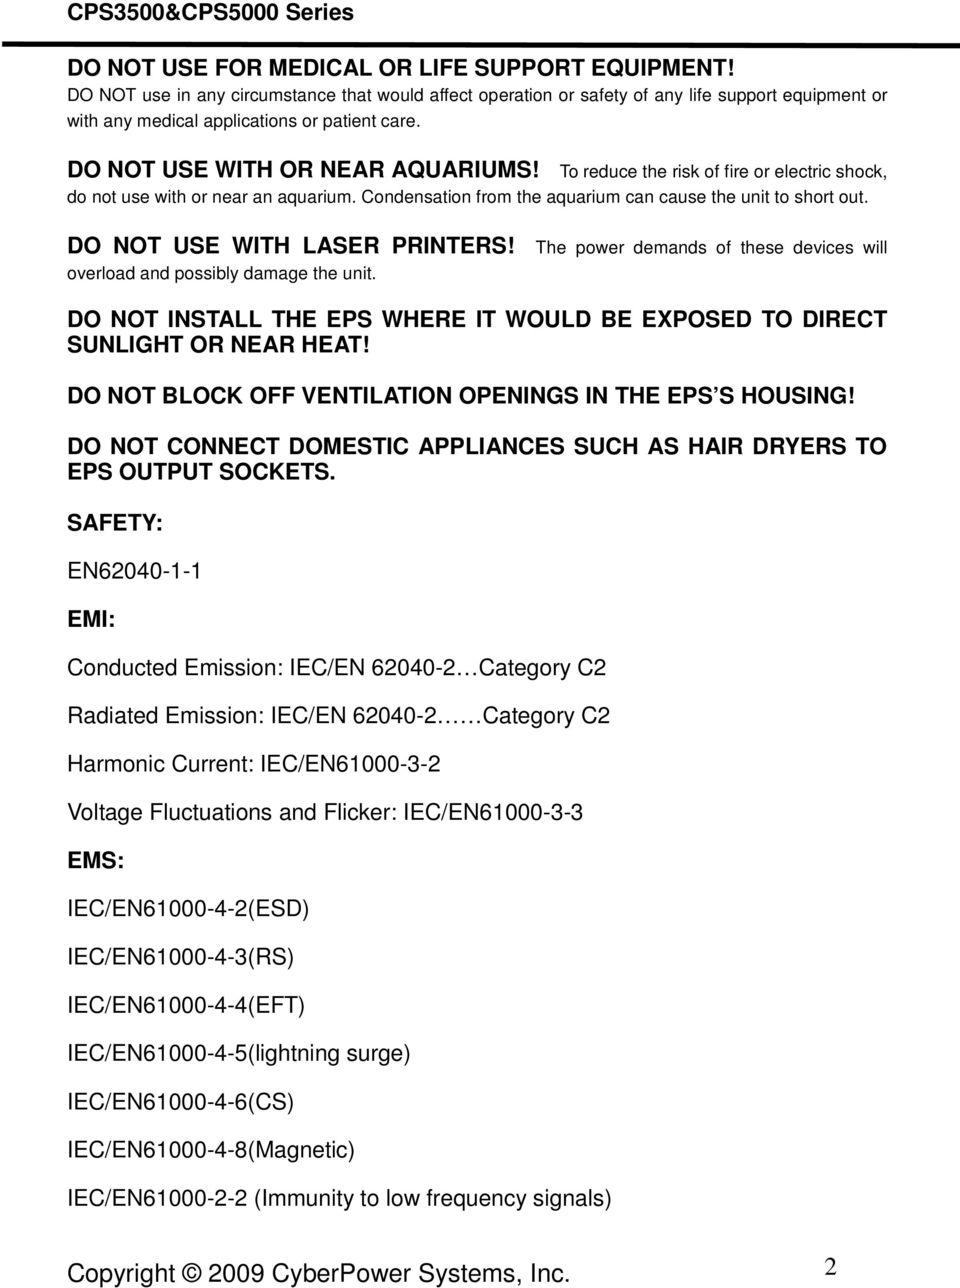 DO NOT USE WITH LASER PRINTERS! The power demands of these devices will overload and possibly damage the unit. DO NOT INSTALL THE EPS WHERE IT WOULD BE EXPOSED TO DIRECT SUNLIGHT OR NEAR HEAT!